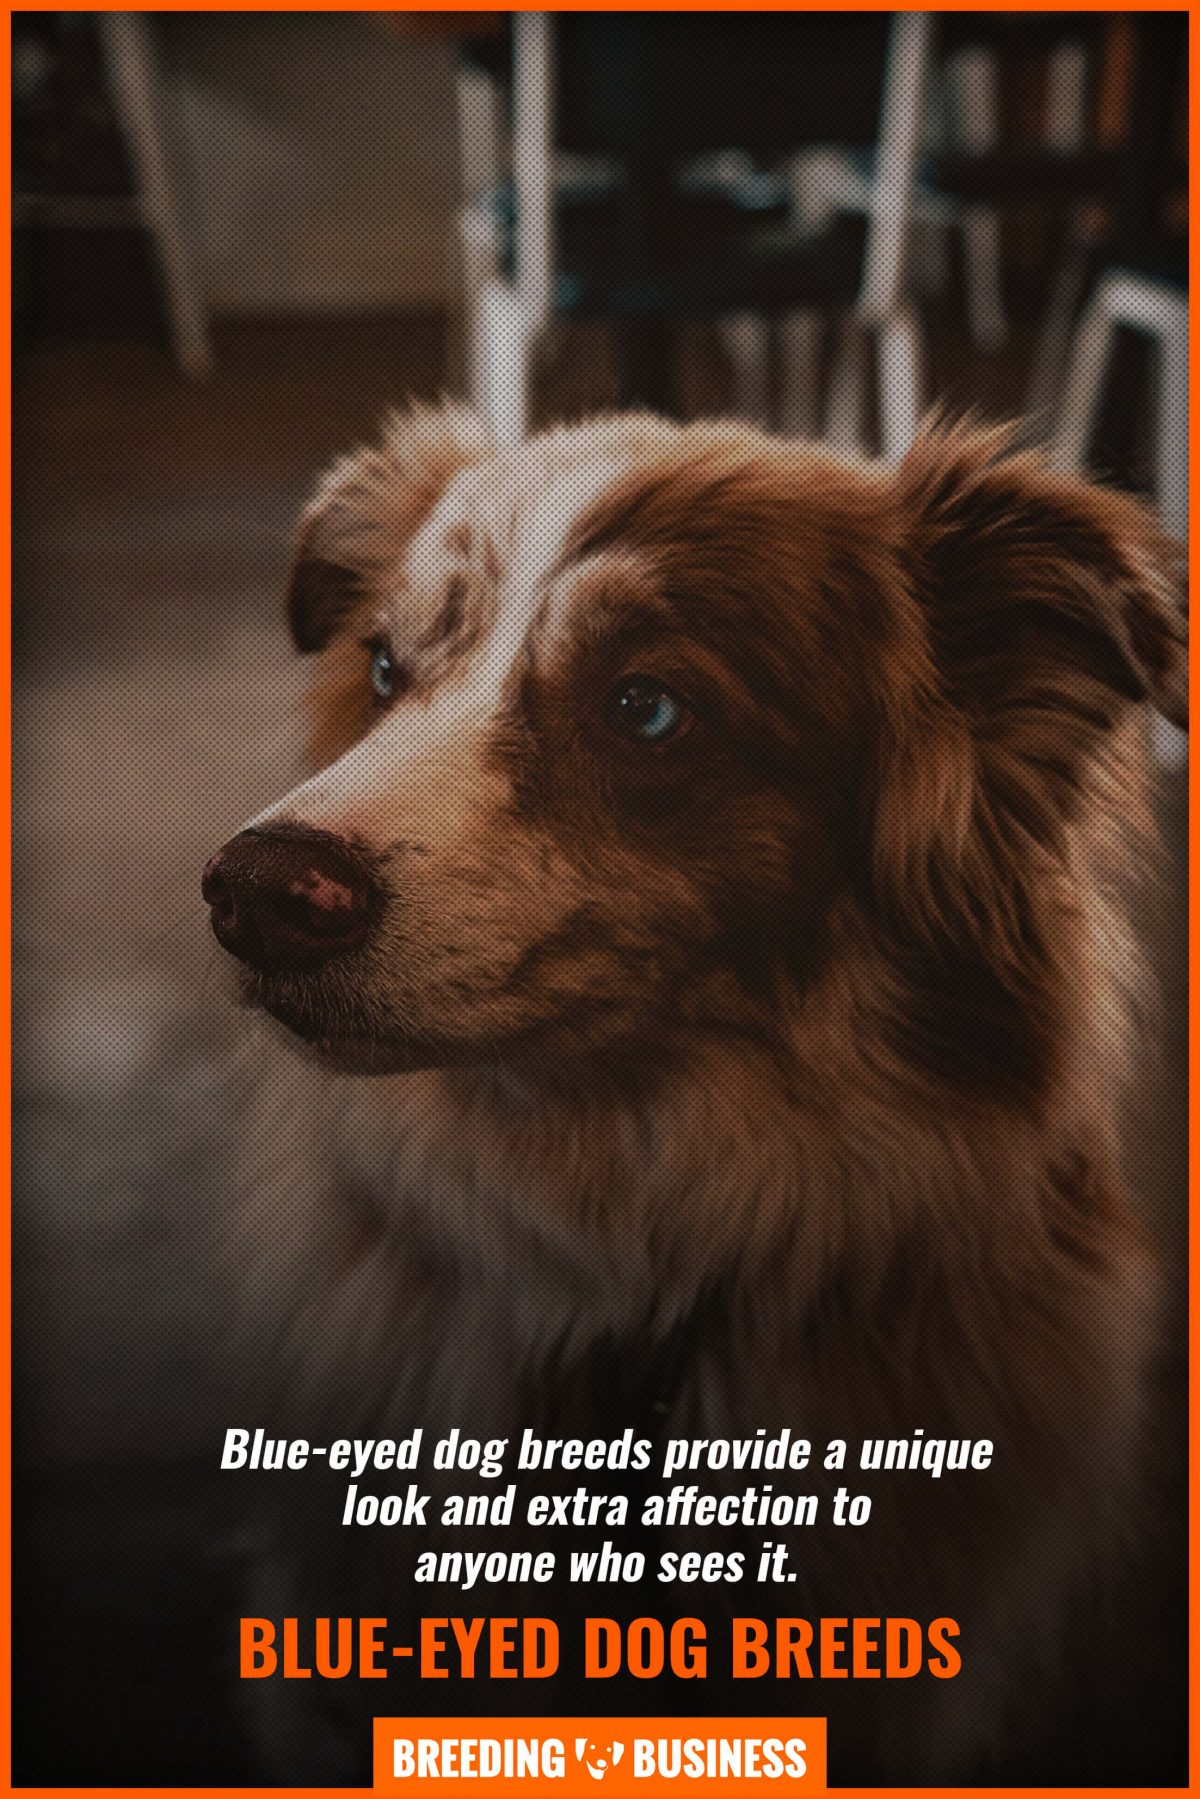 blue-eyed dog breeds